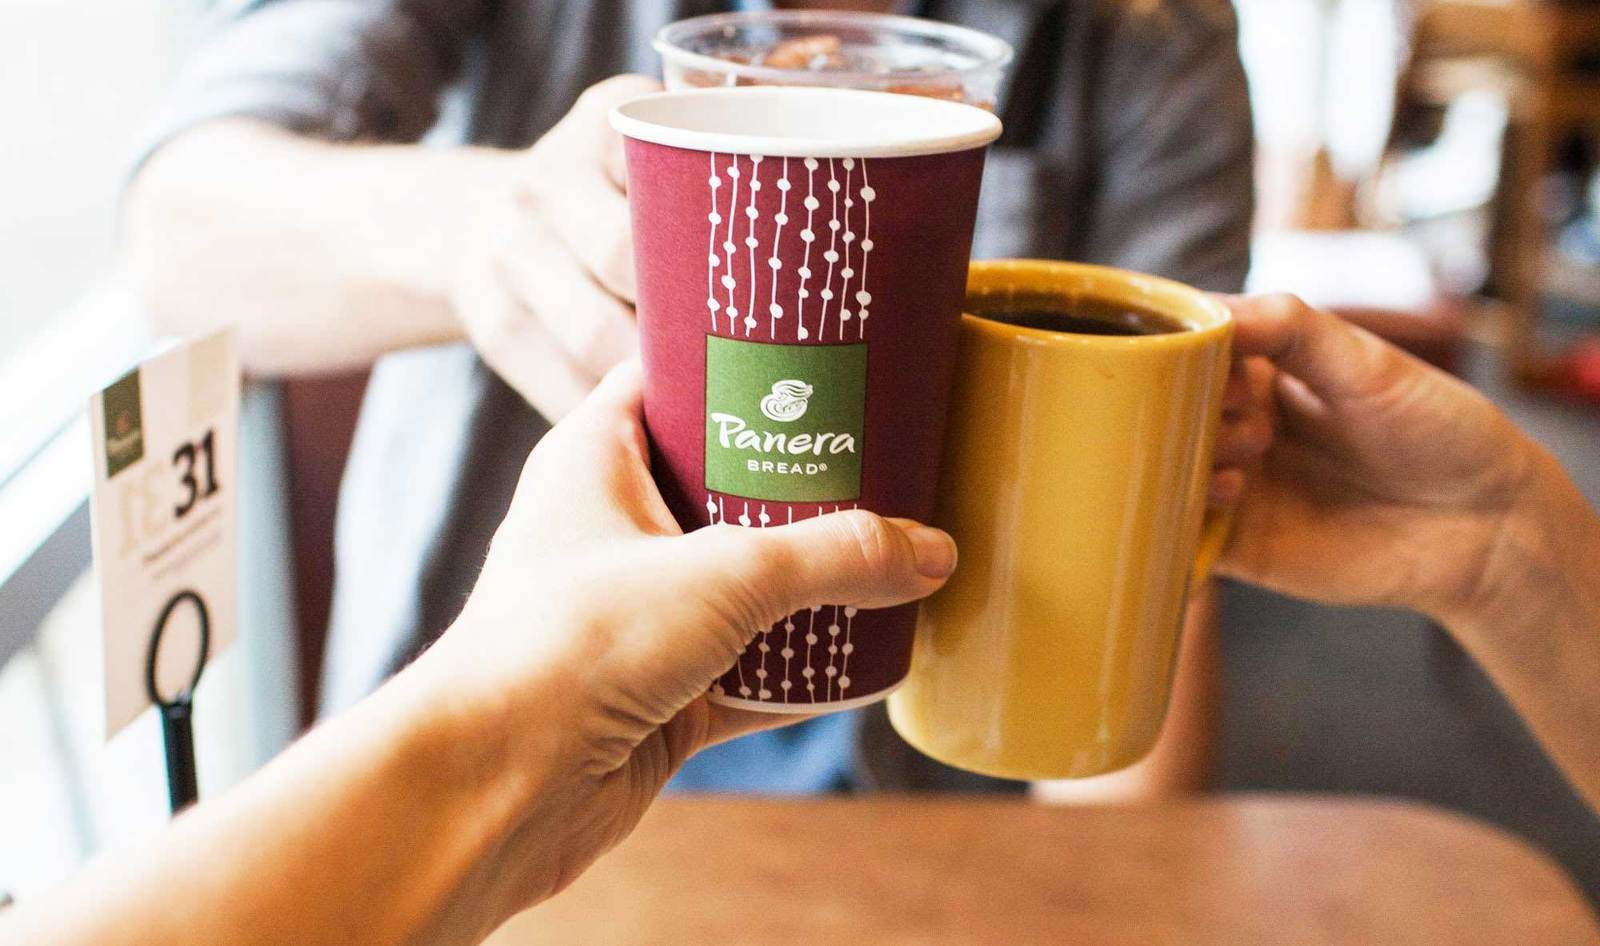 VegNews.PaneraBreadCoffee